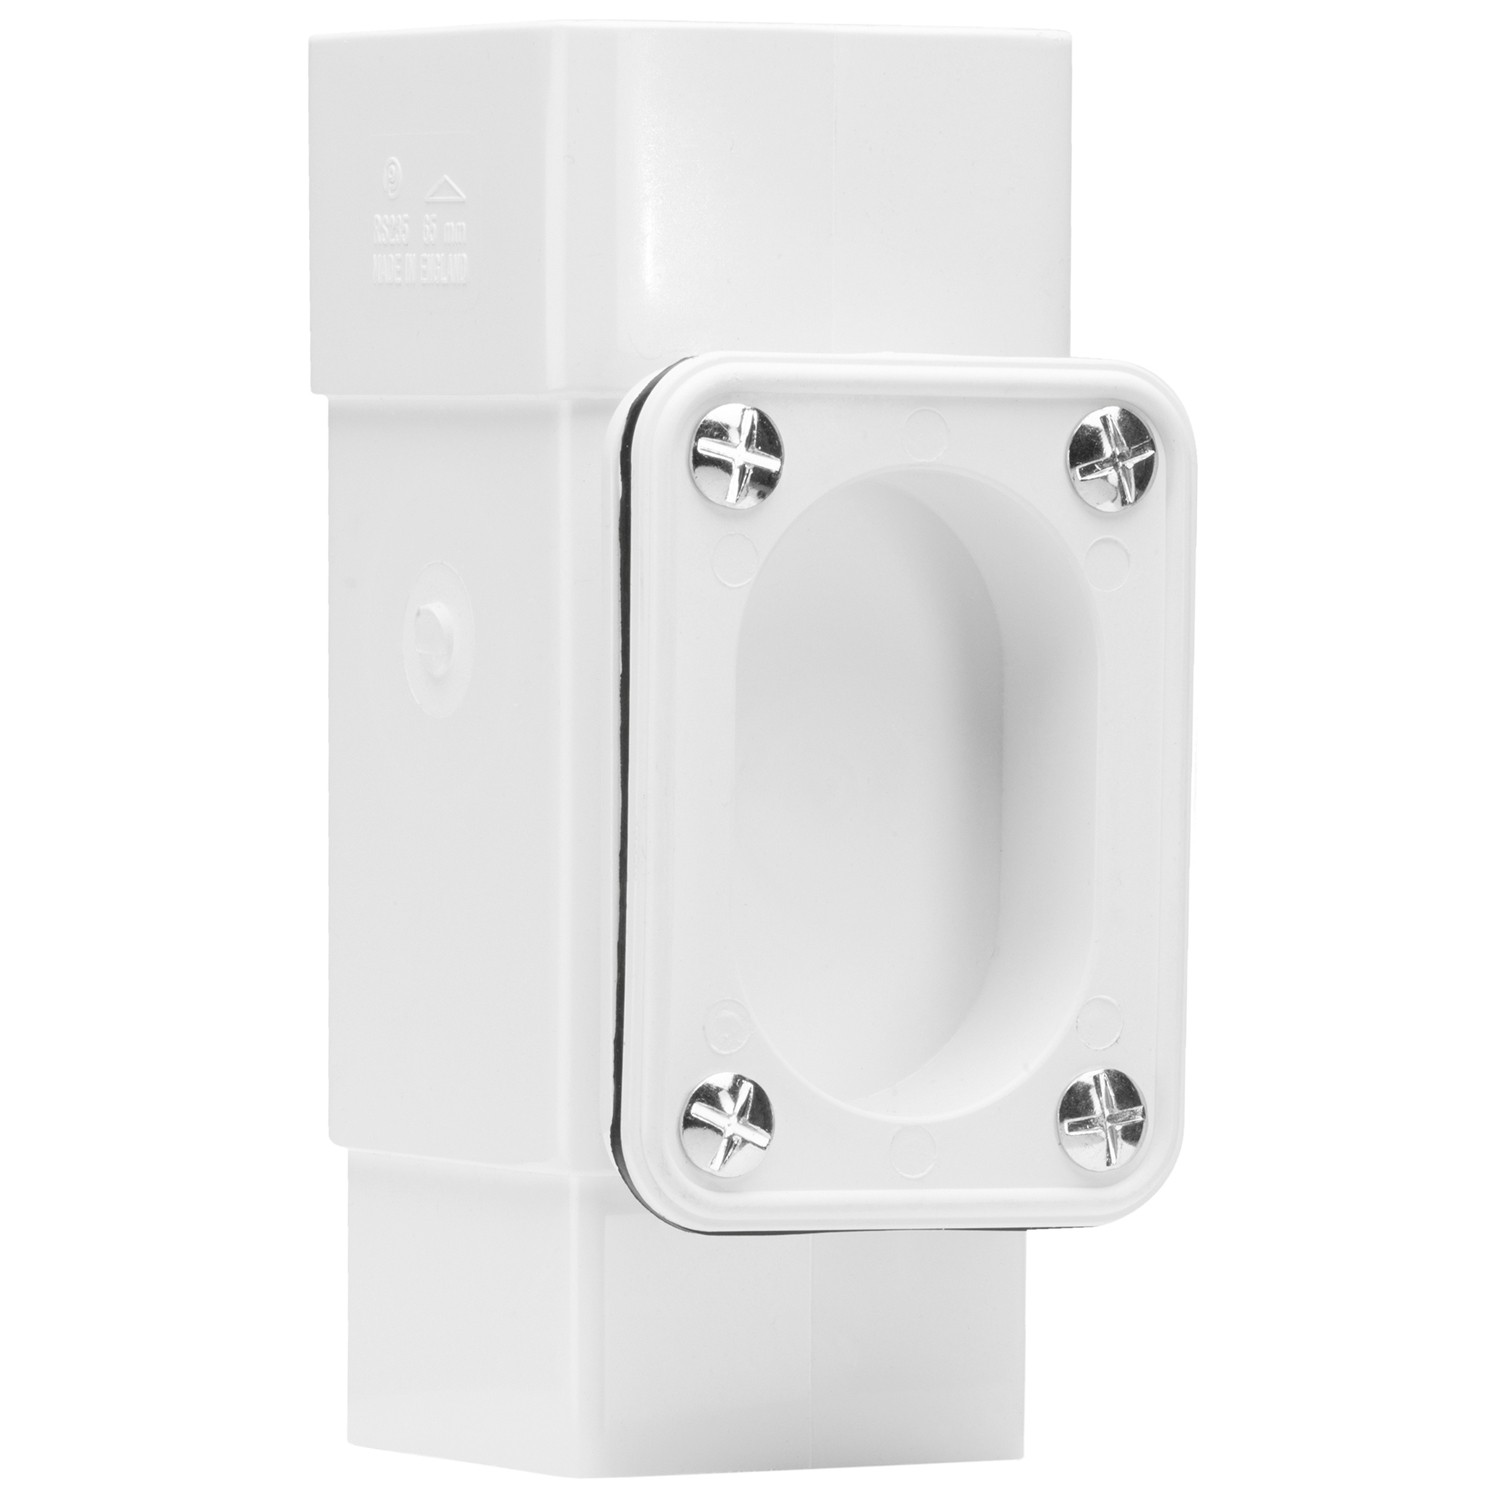 Polypipe 65mm Square Down Pipe Access Pipe - White